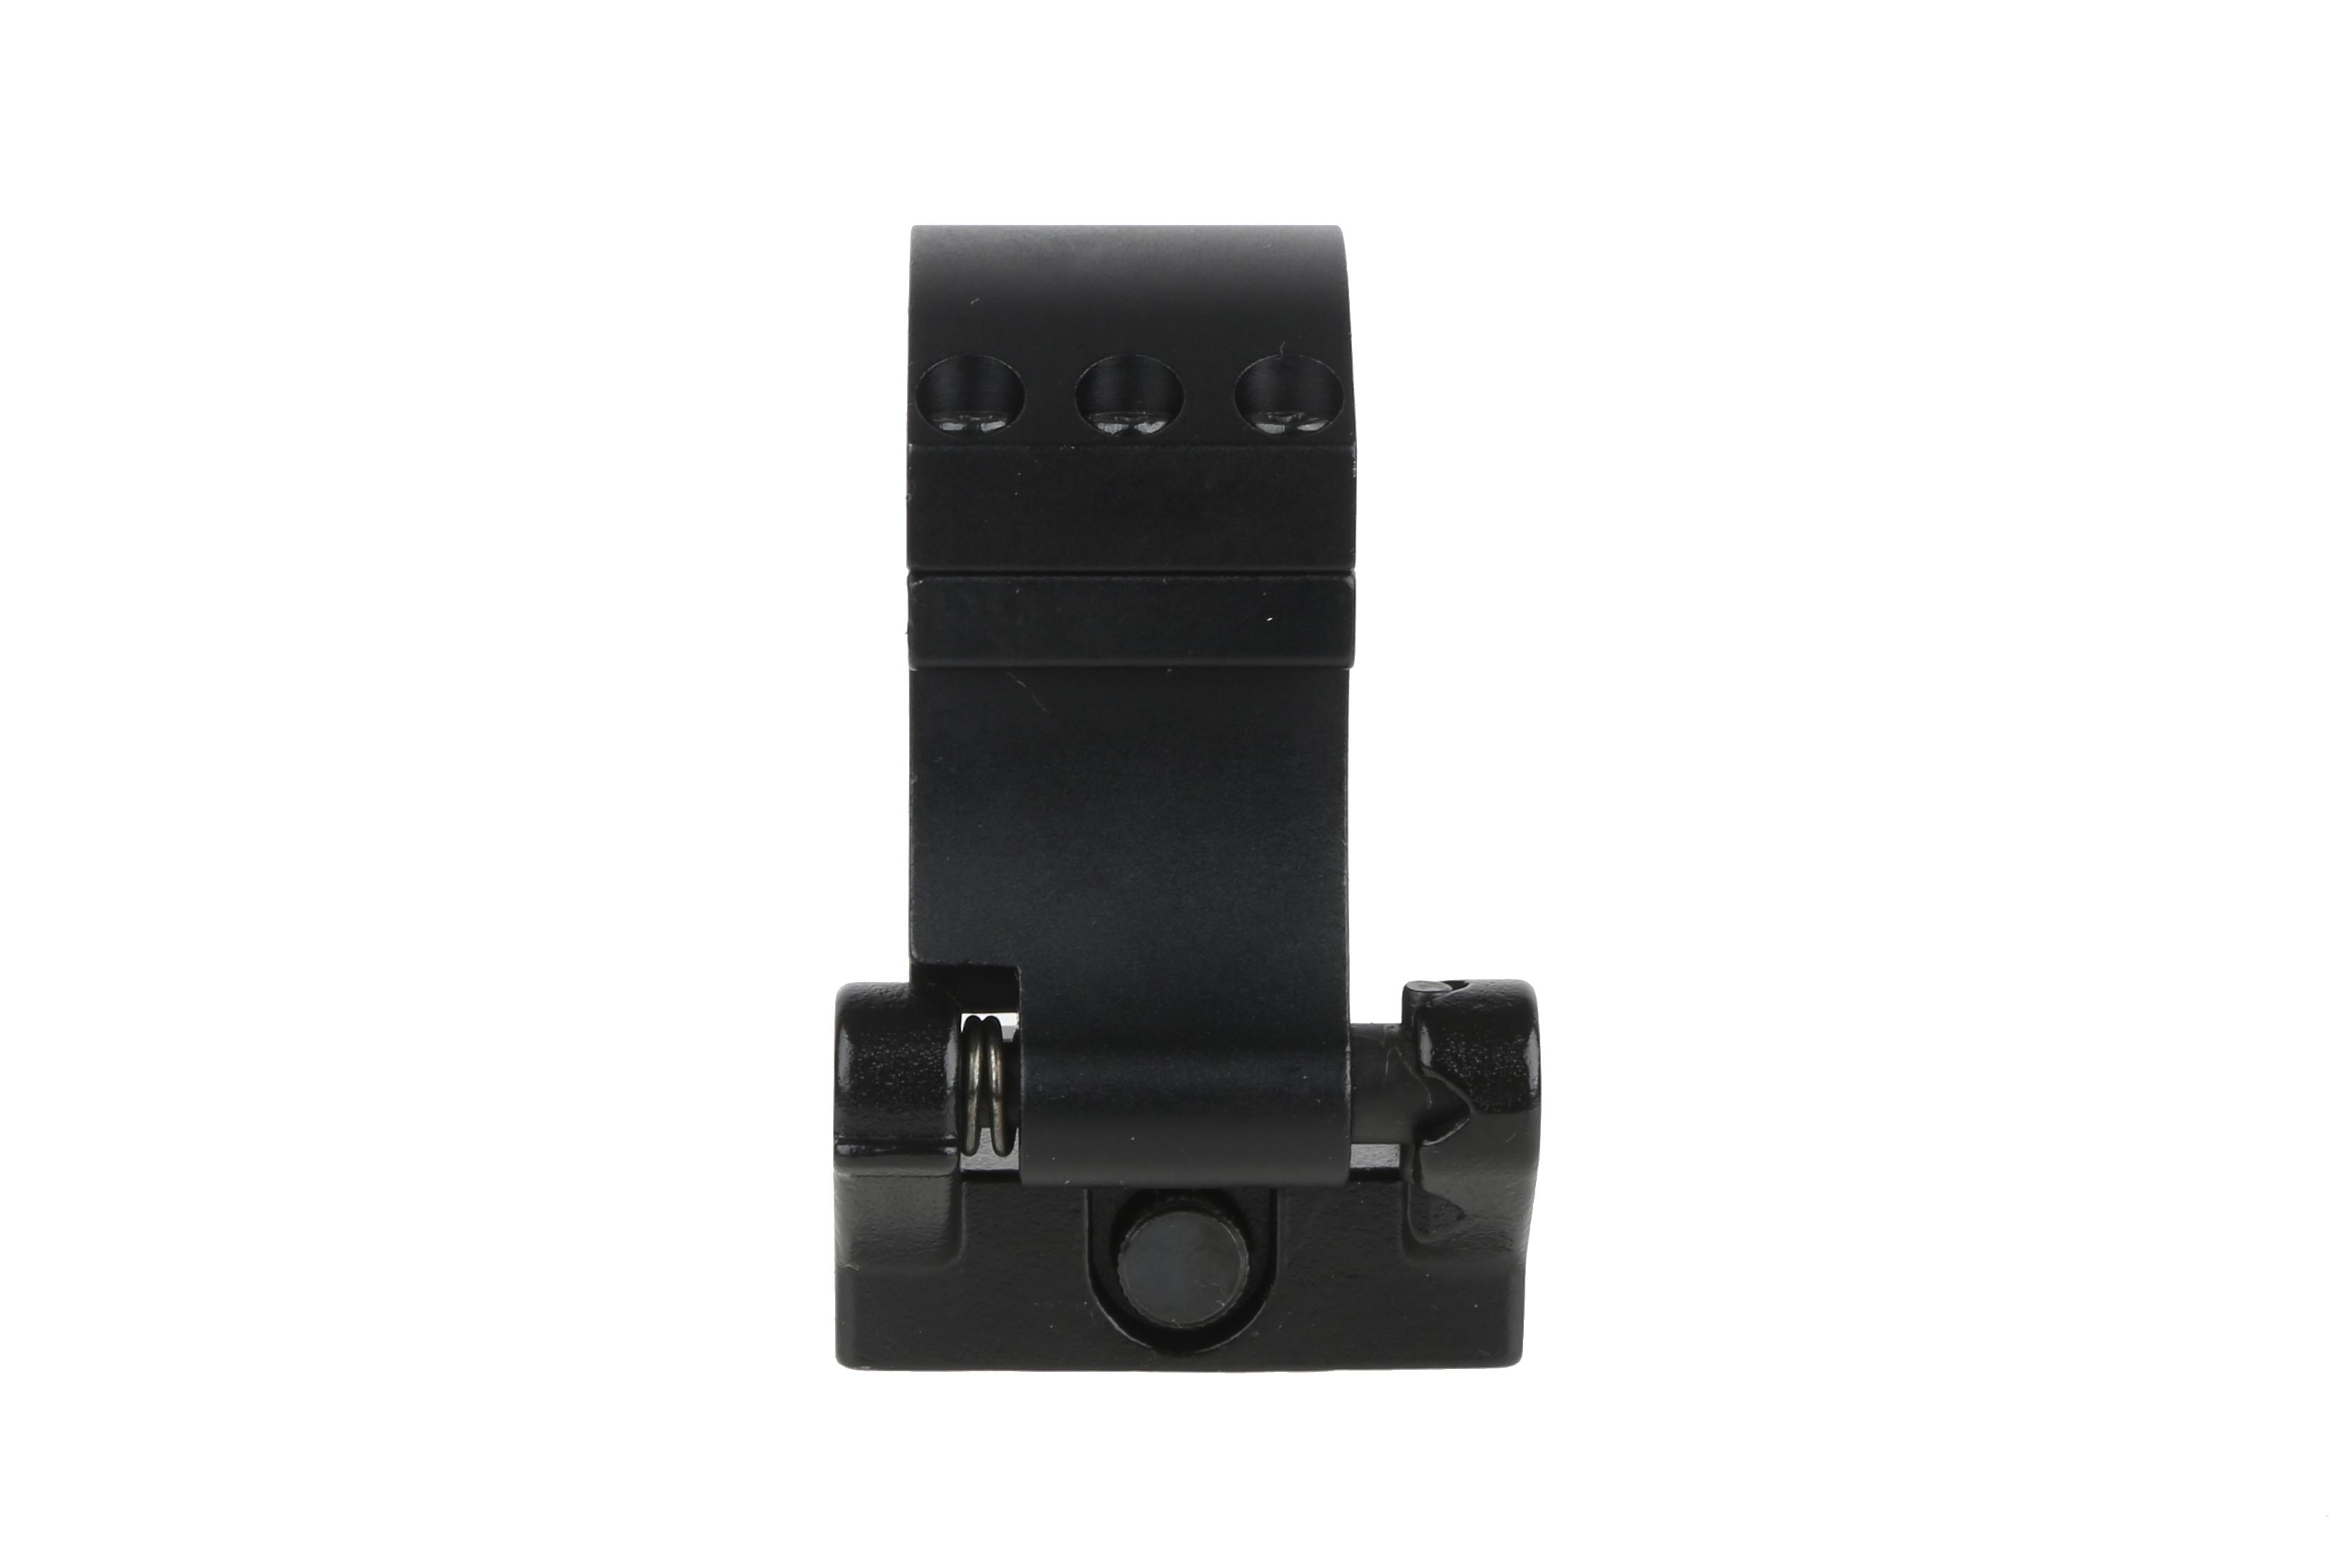 The Primary Arms 30mm flip 2 side mount features a black anodized finish